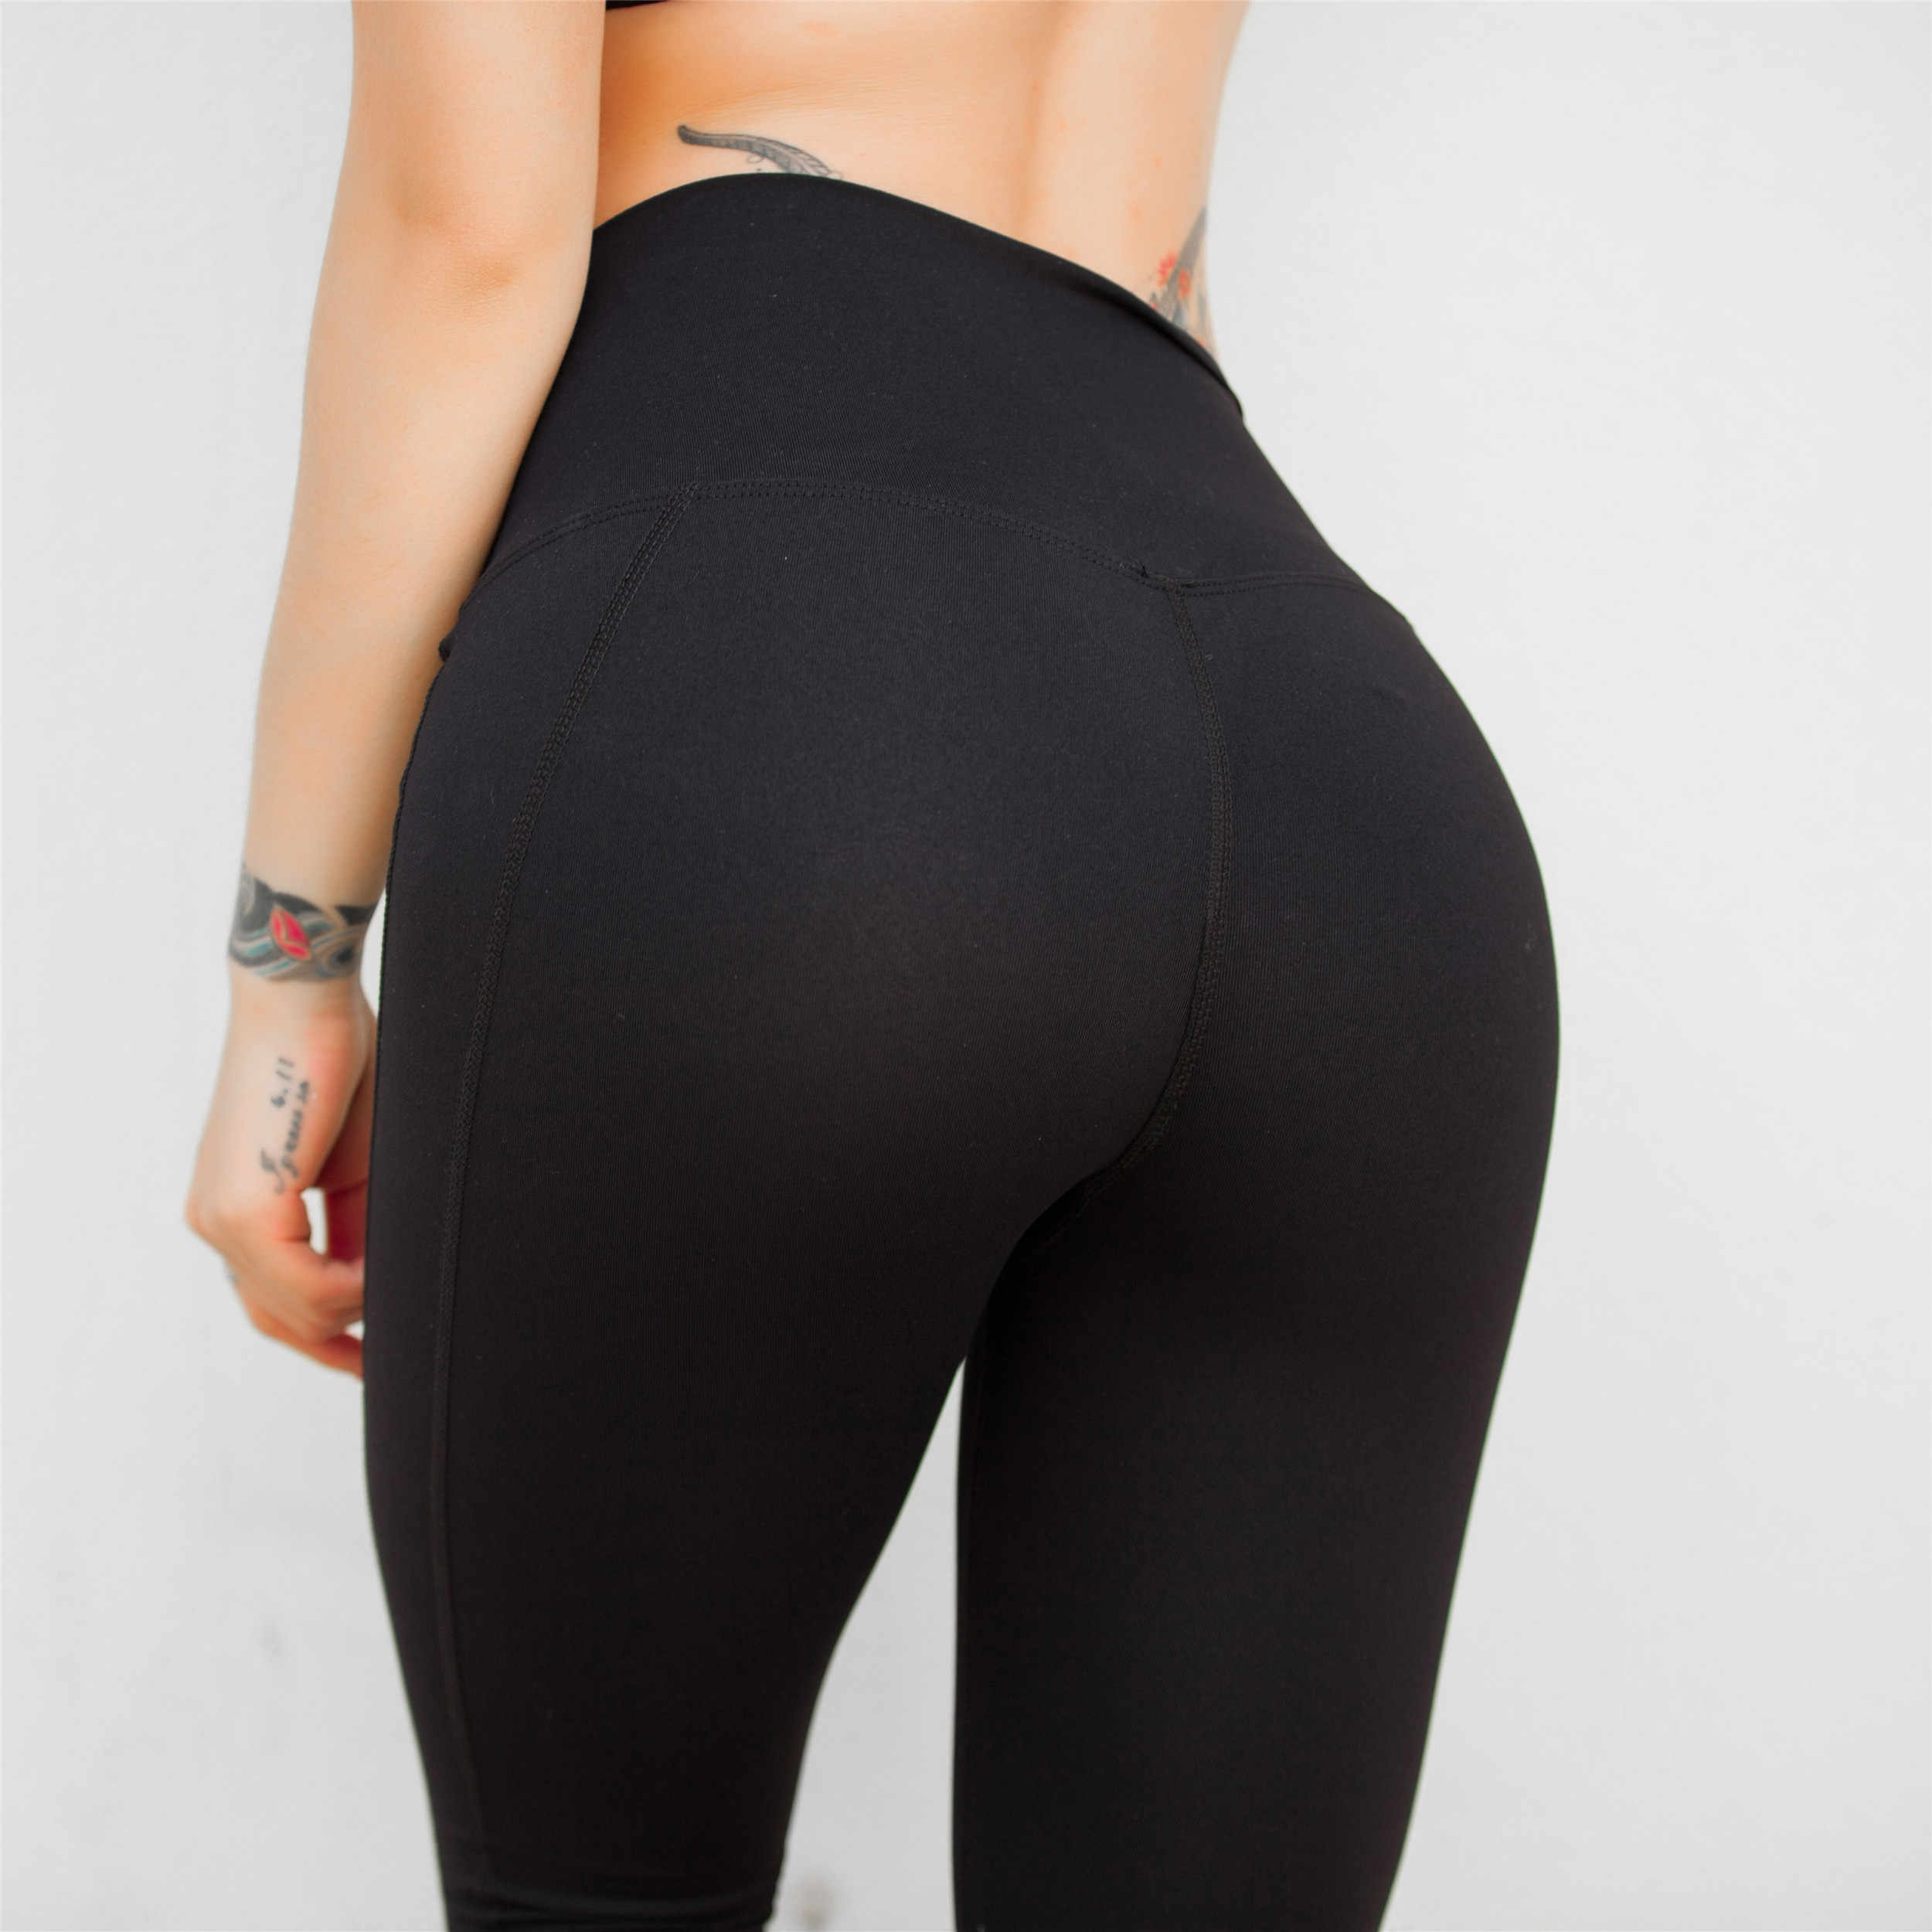 f73f2d7a10f060 ... 2019 New High Waist Fitness legging yoga pant for Women Running workout  tight Nylon Spandex Jersey ...